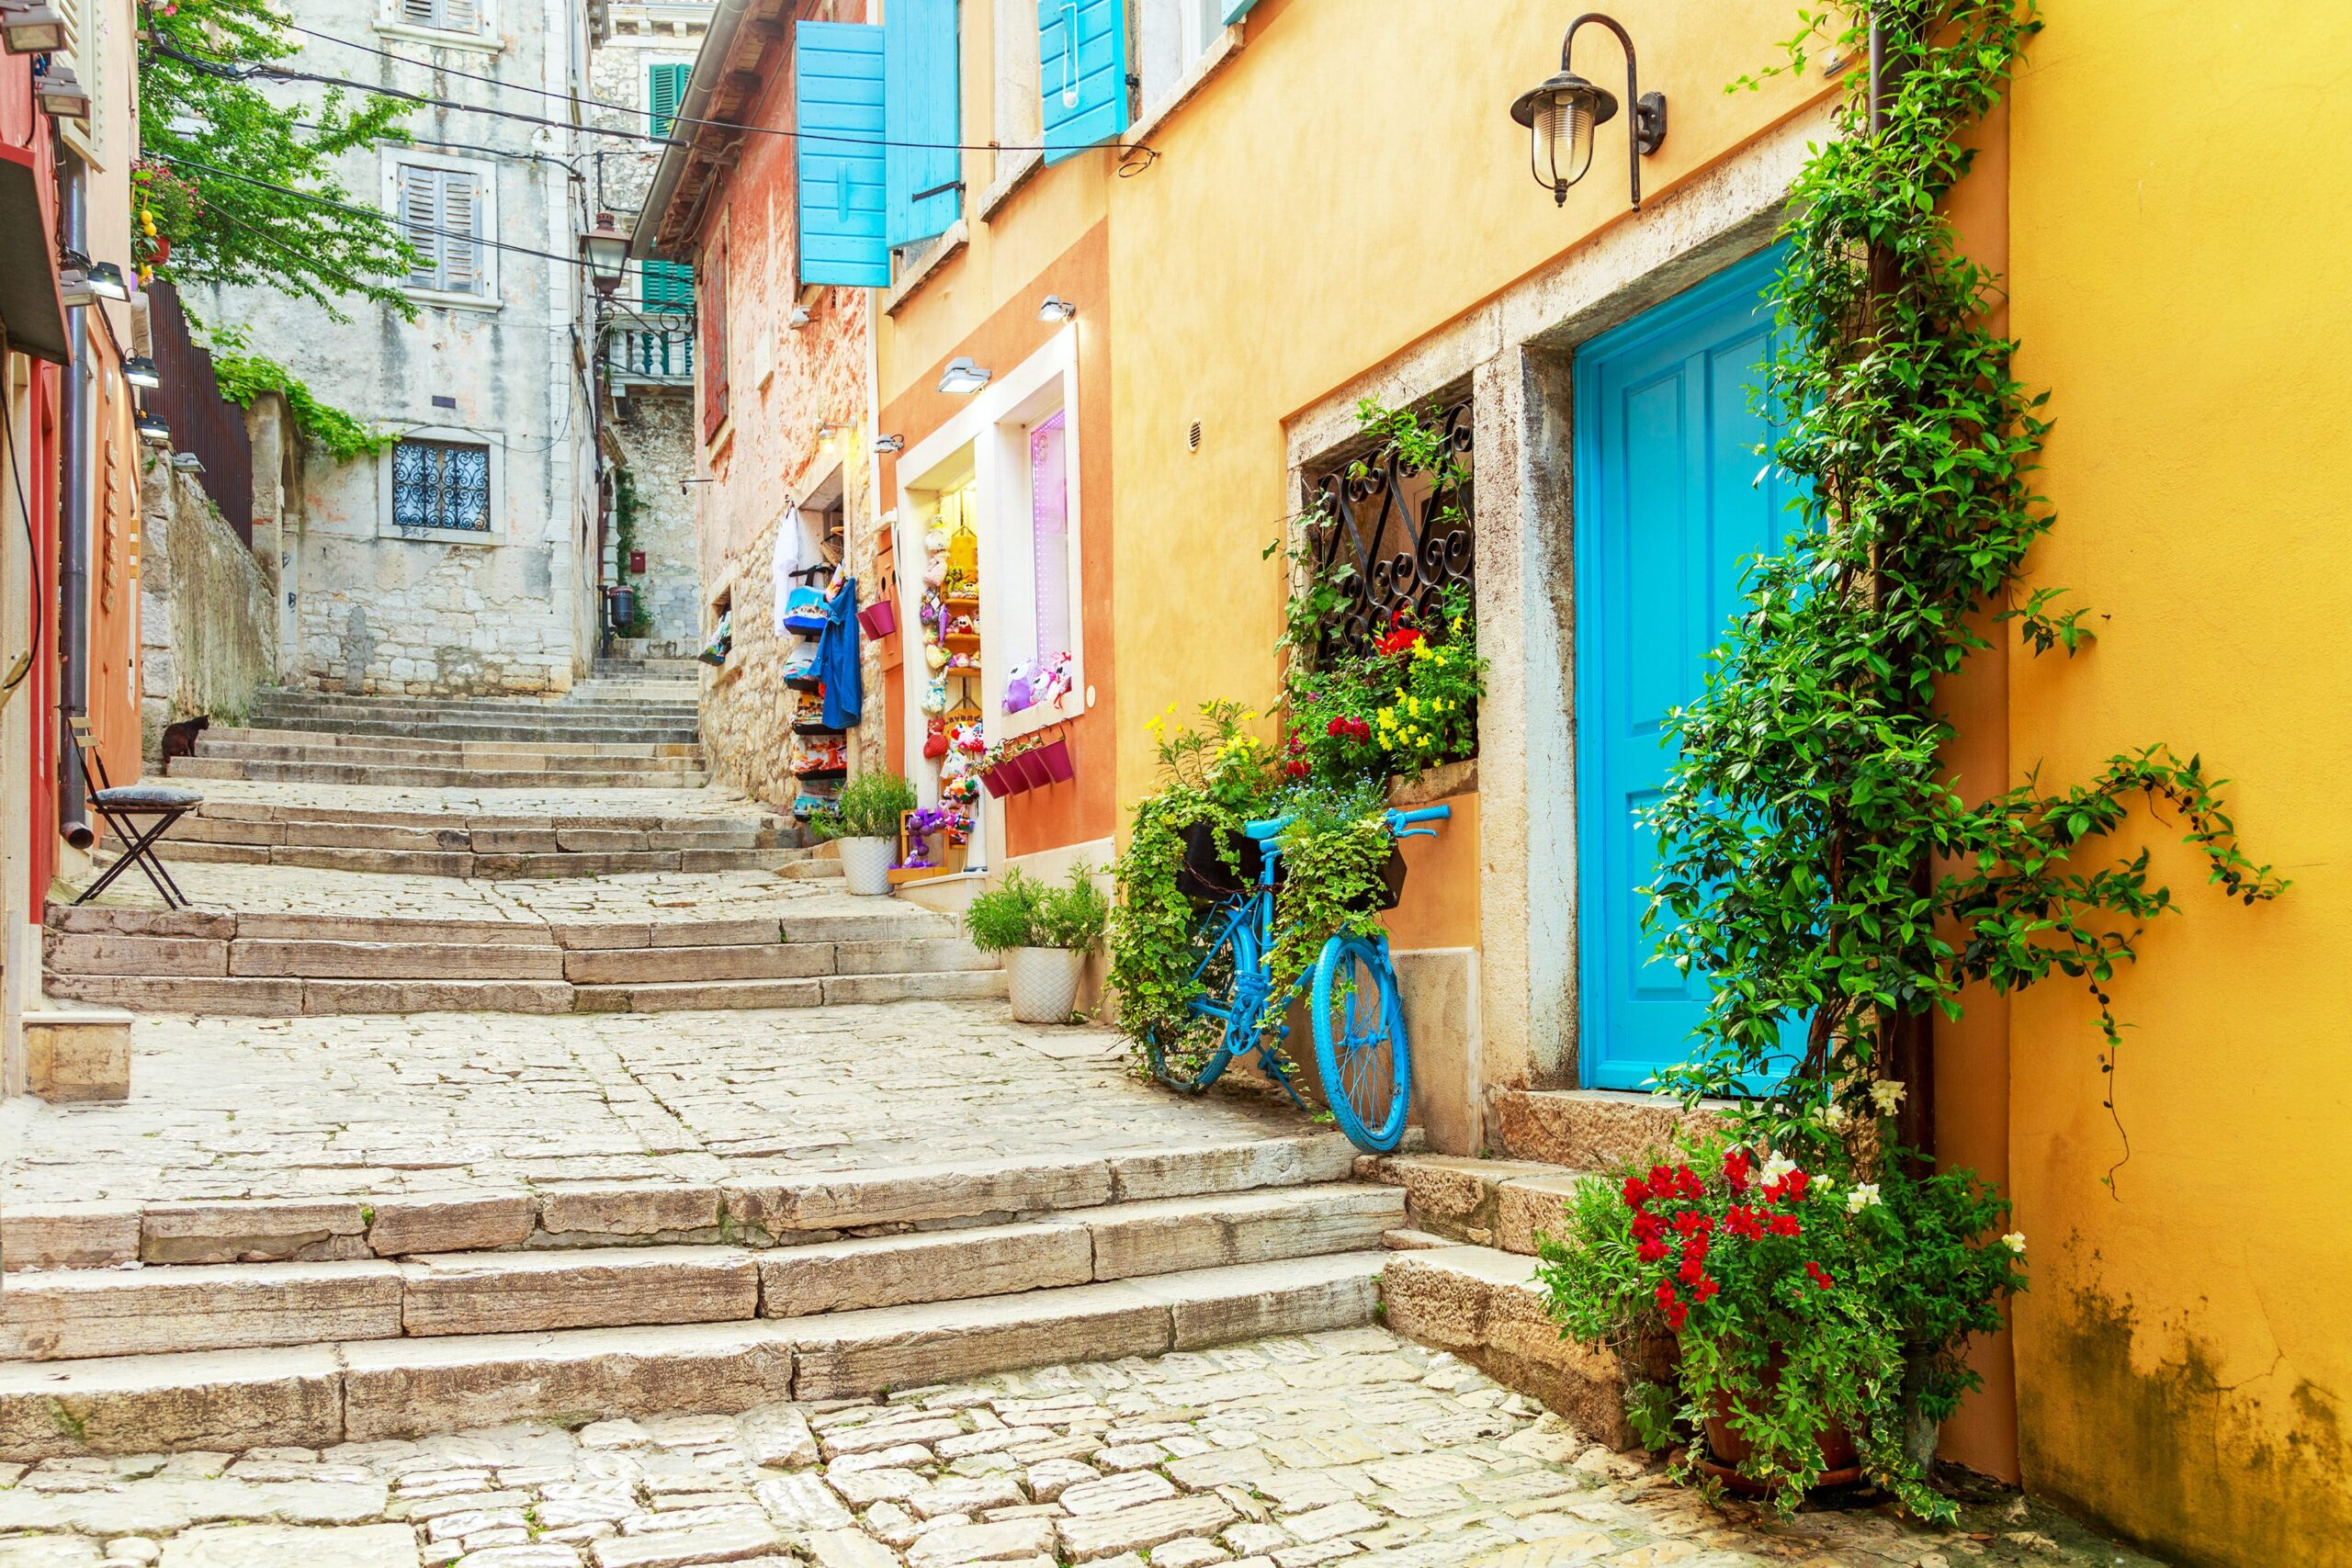 Laneway at Rovinj with colourful building facades